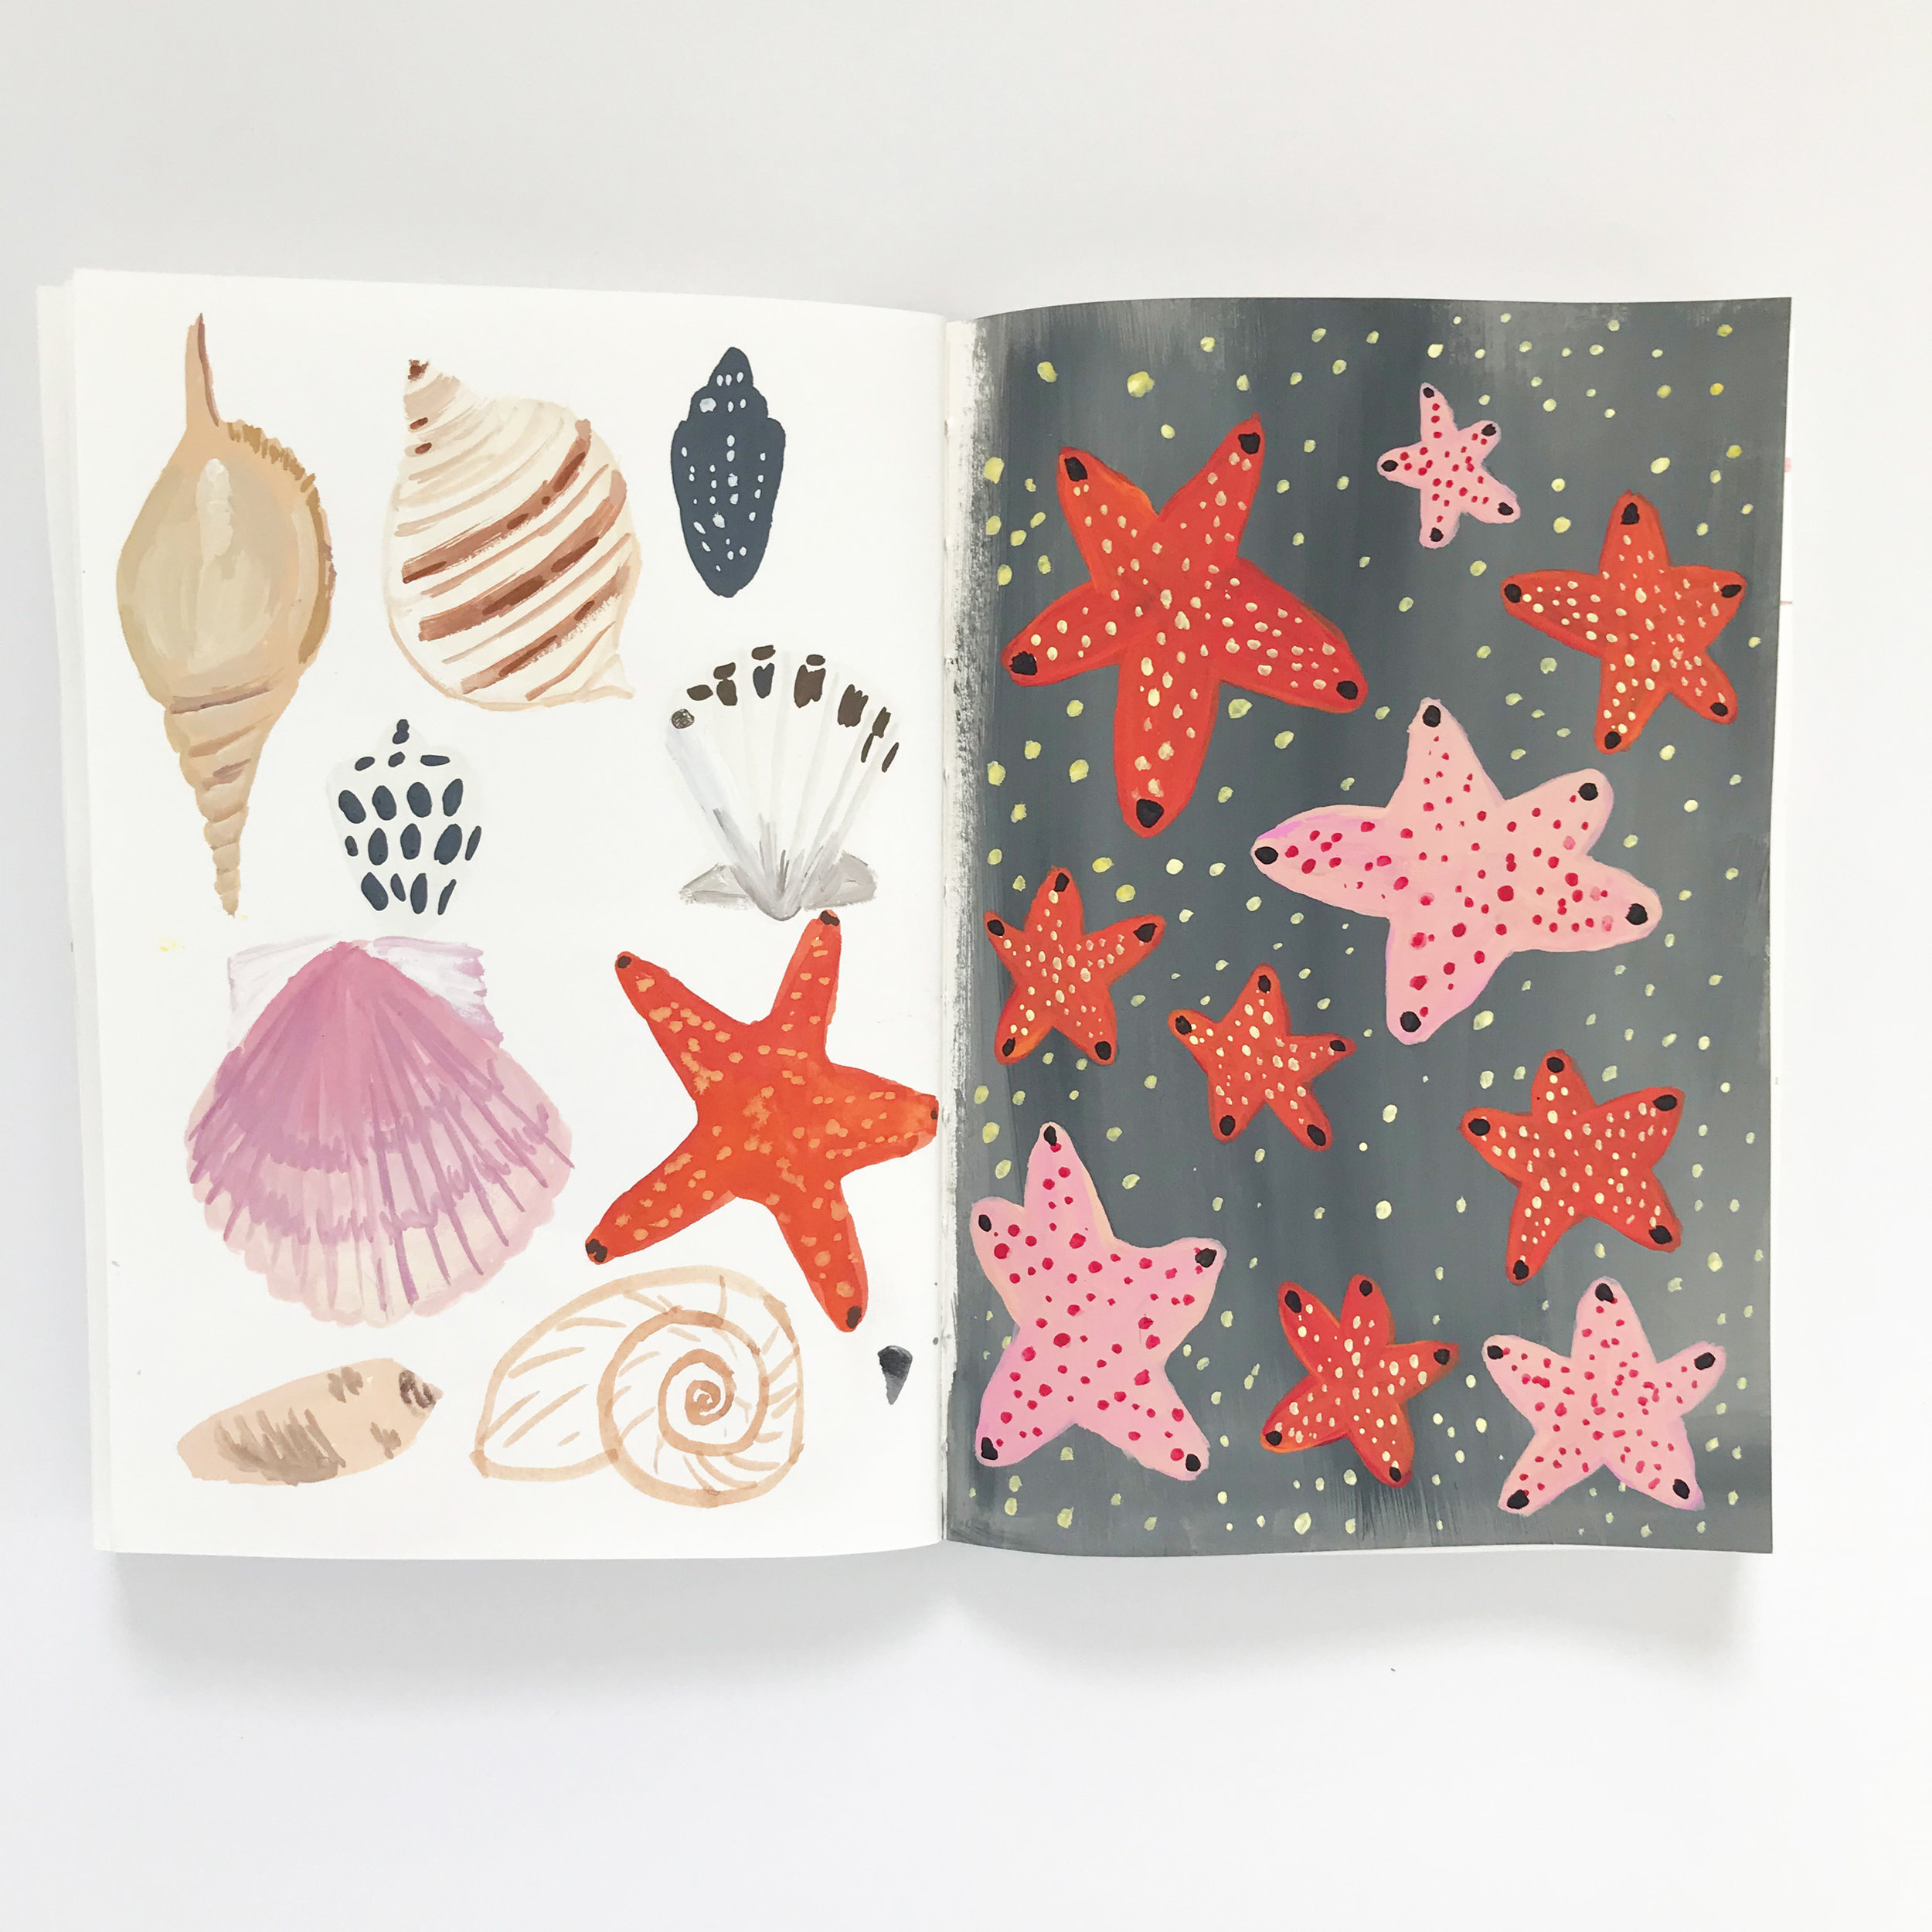 A Page from the second collaborative sketchbook by Dana Barbieri and Anne Butera